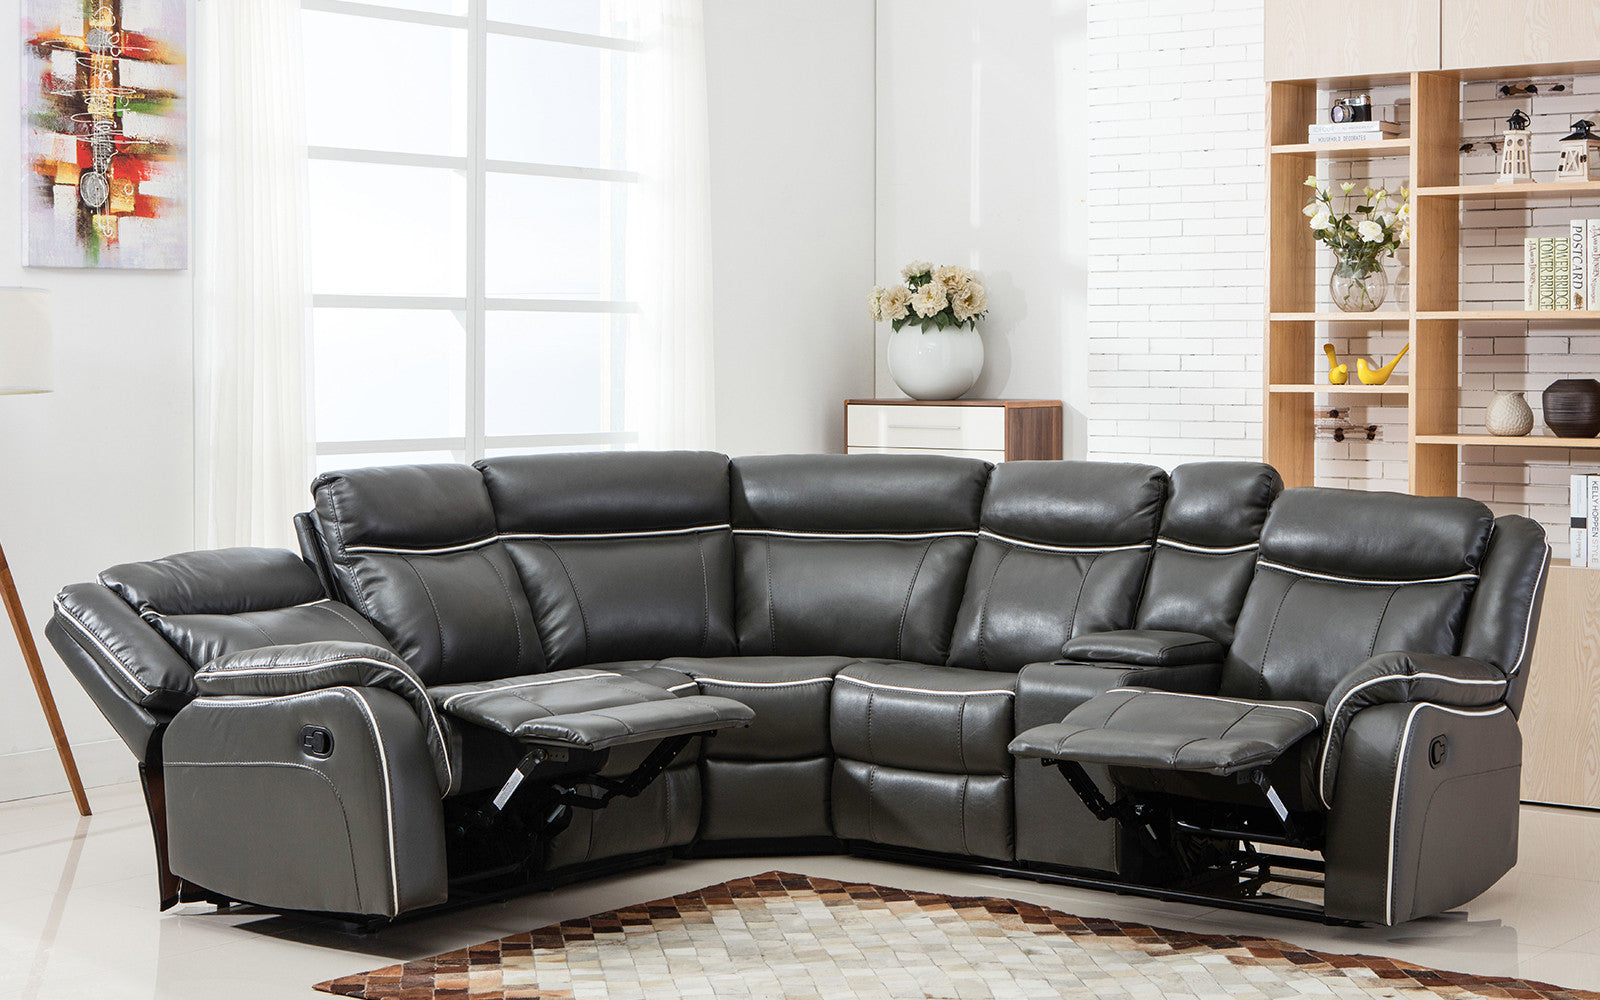 paul classic bonded leather recliner sectional in charcoal